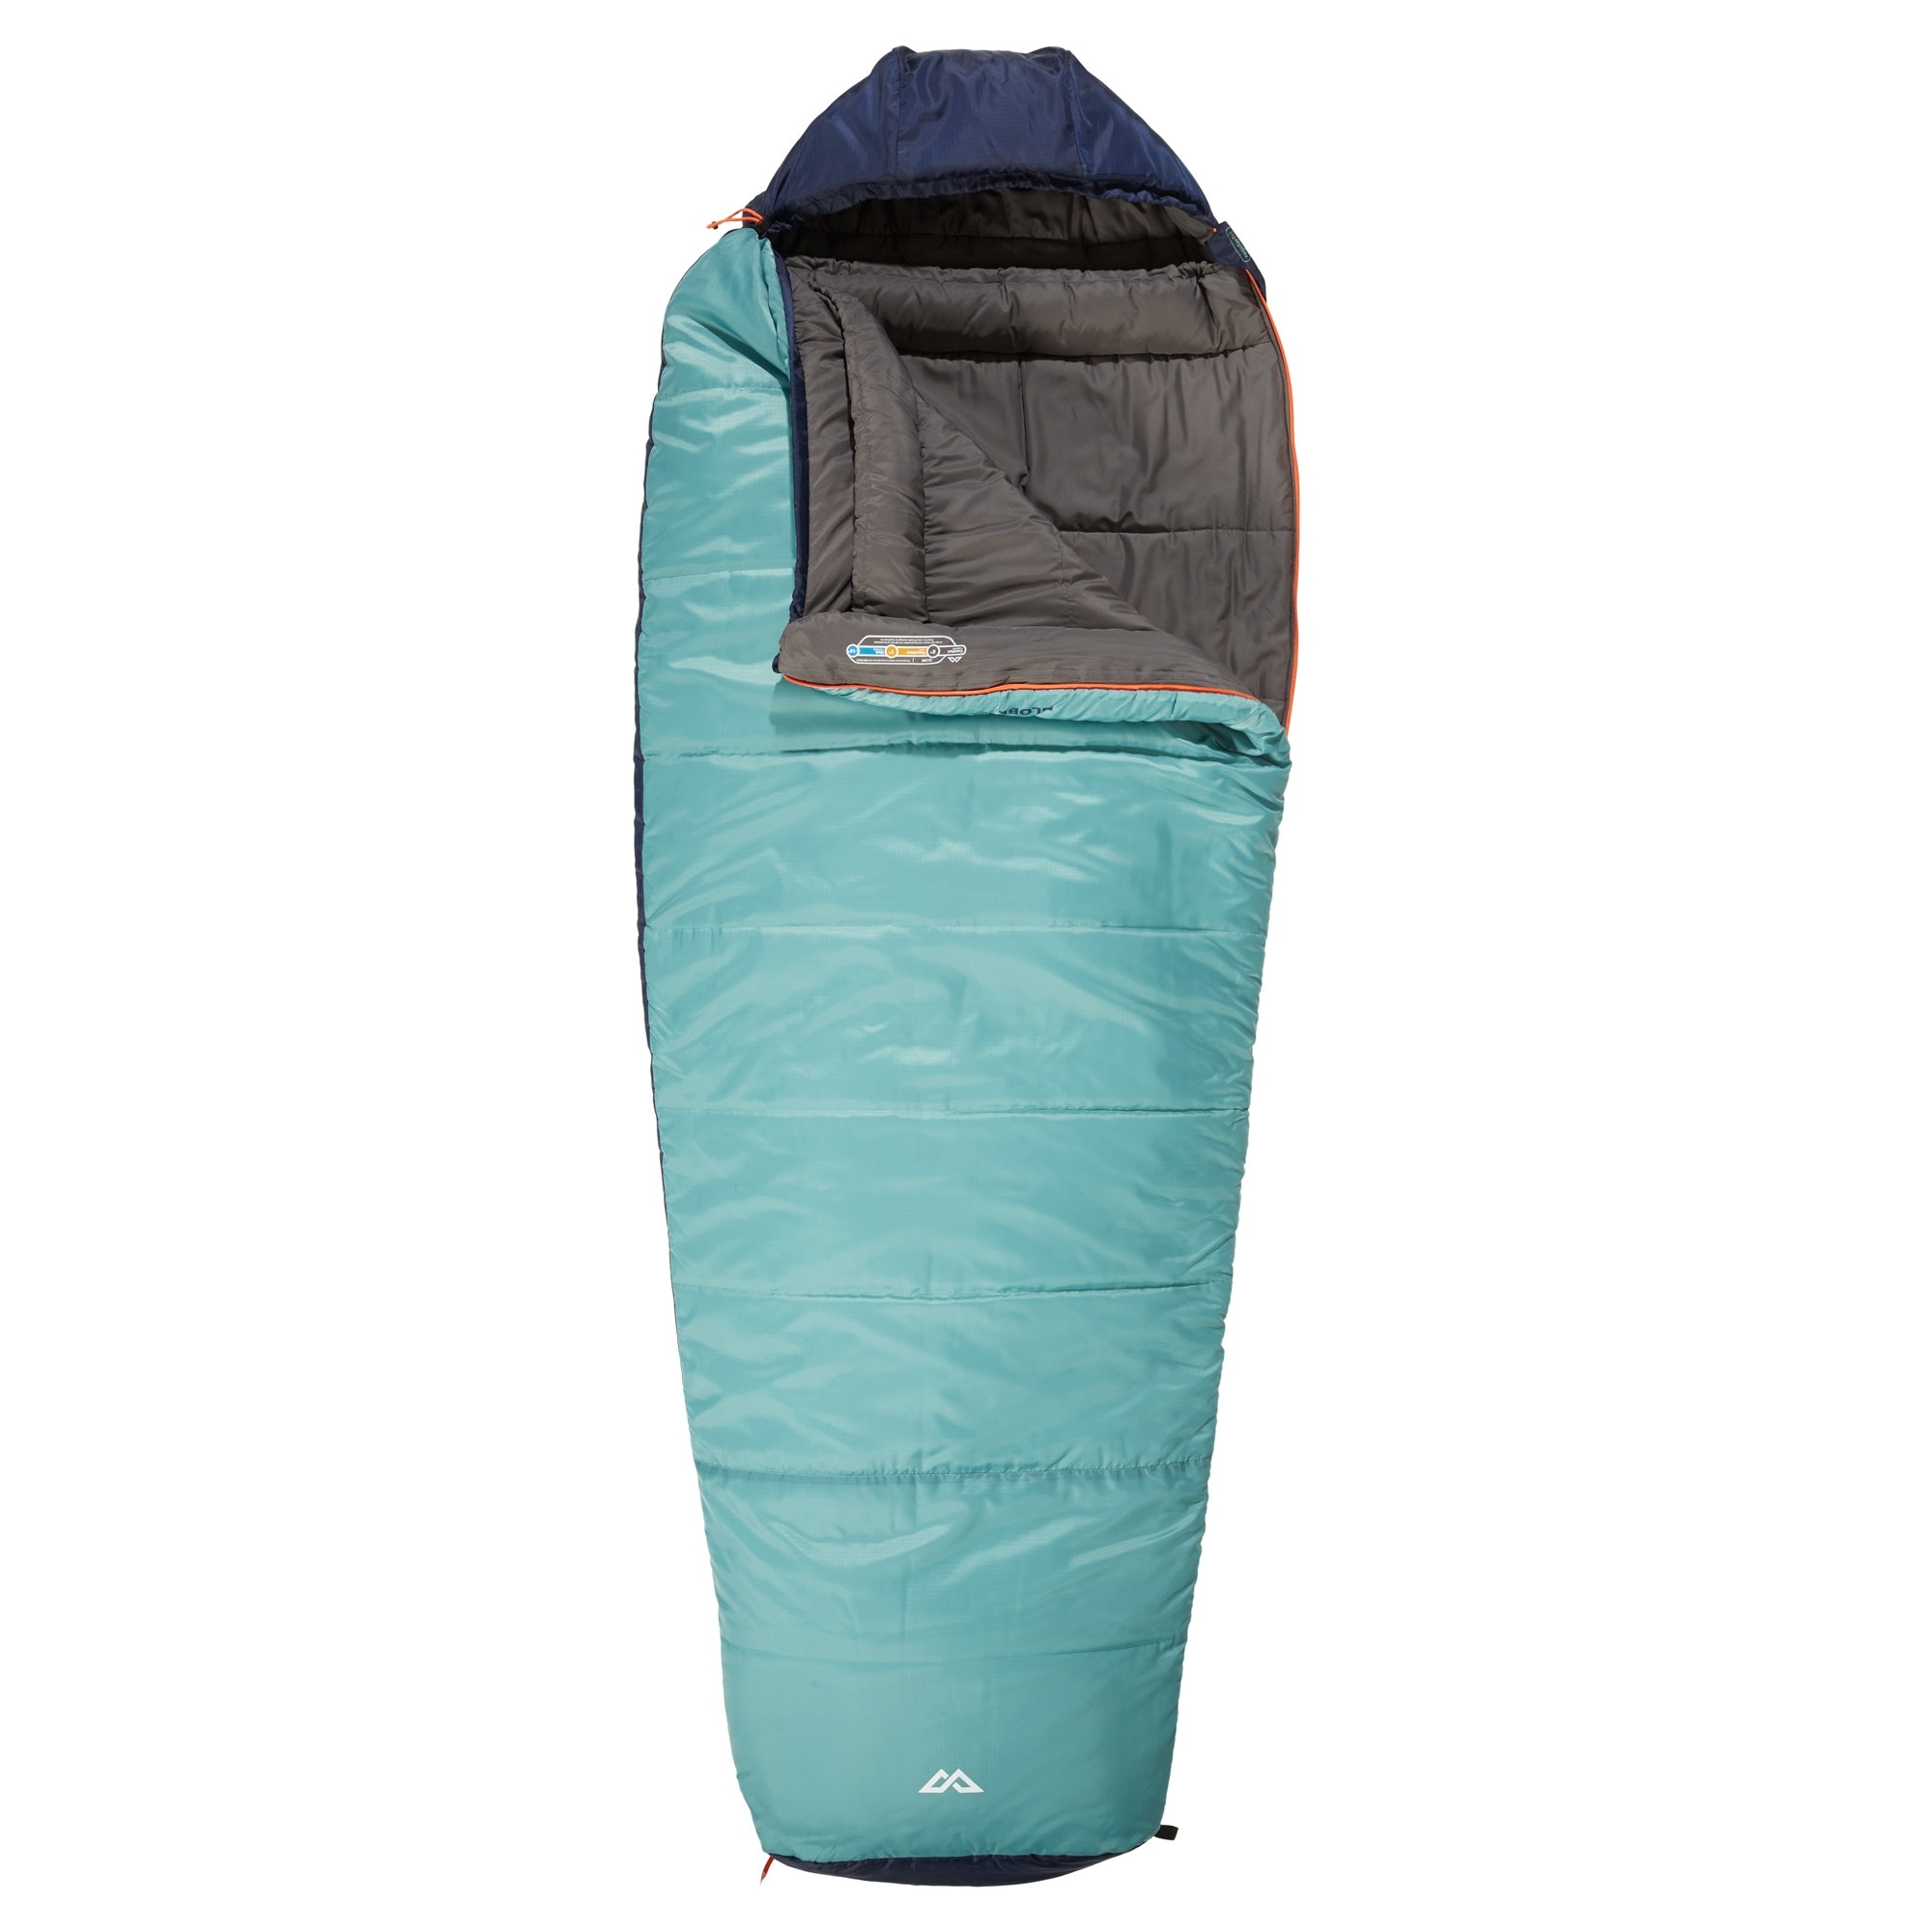 Teton Sleeping Bags